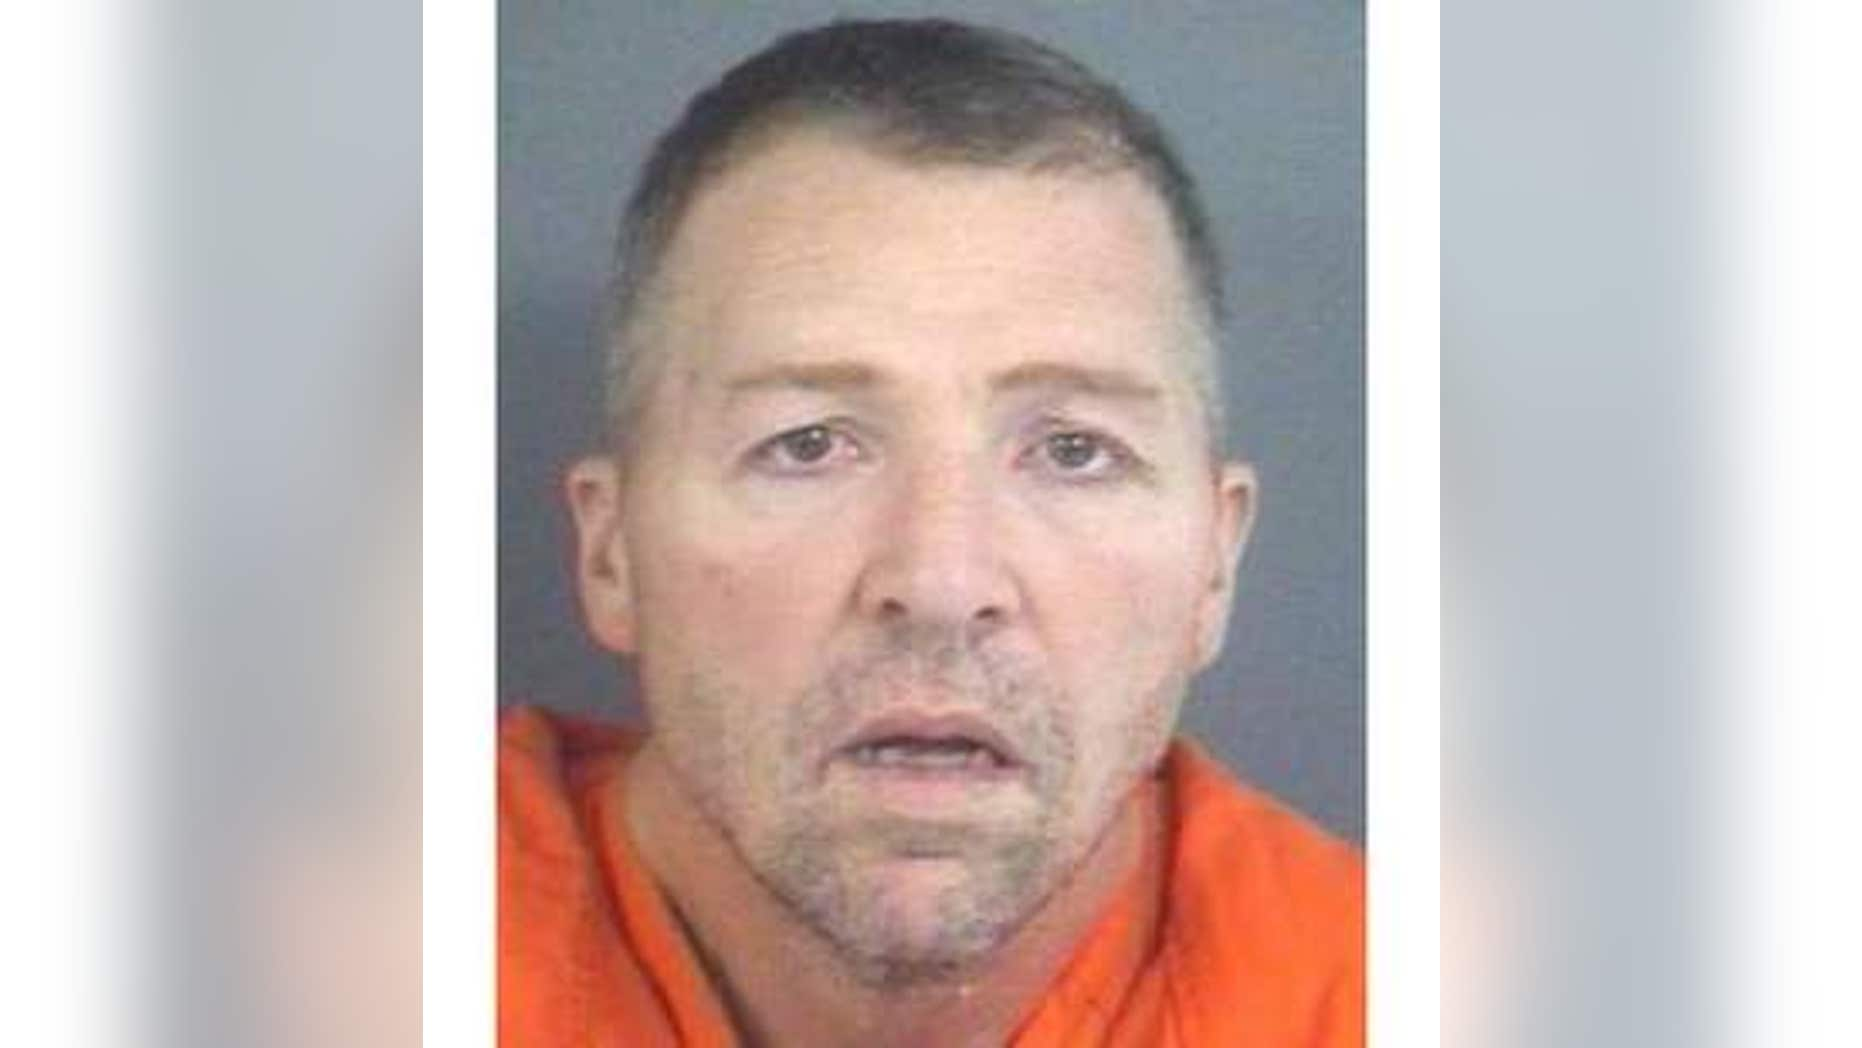 David E. Ison, 46, charged with five counts of murder in Indiana.